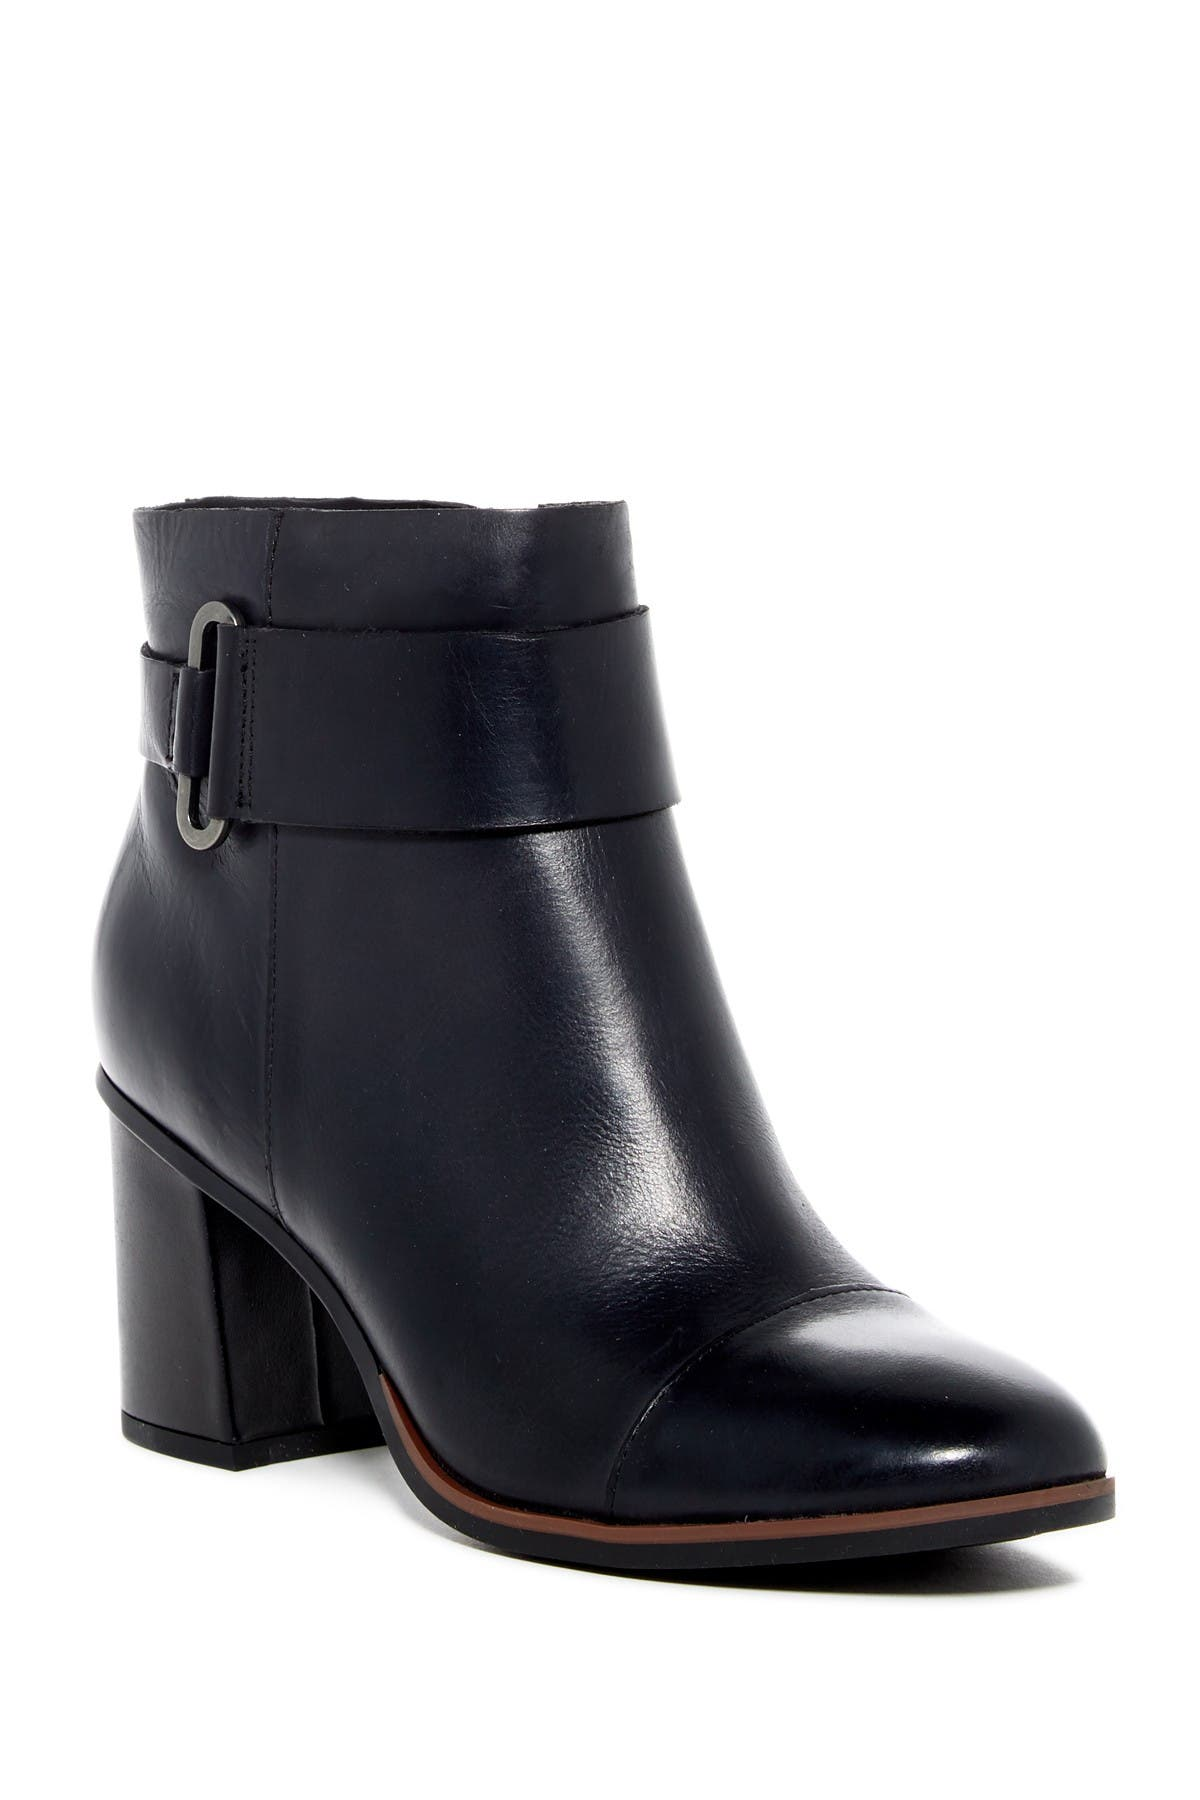 Image of KORKS Decola Leather Boot